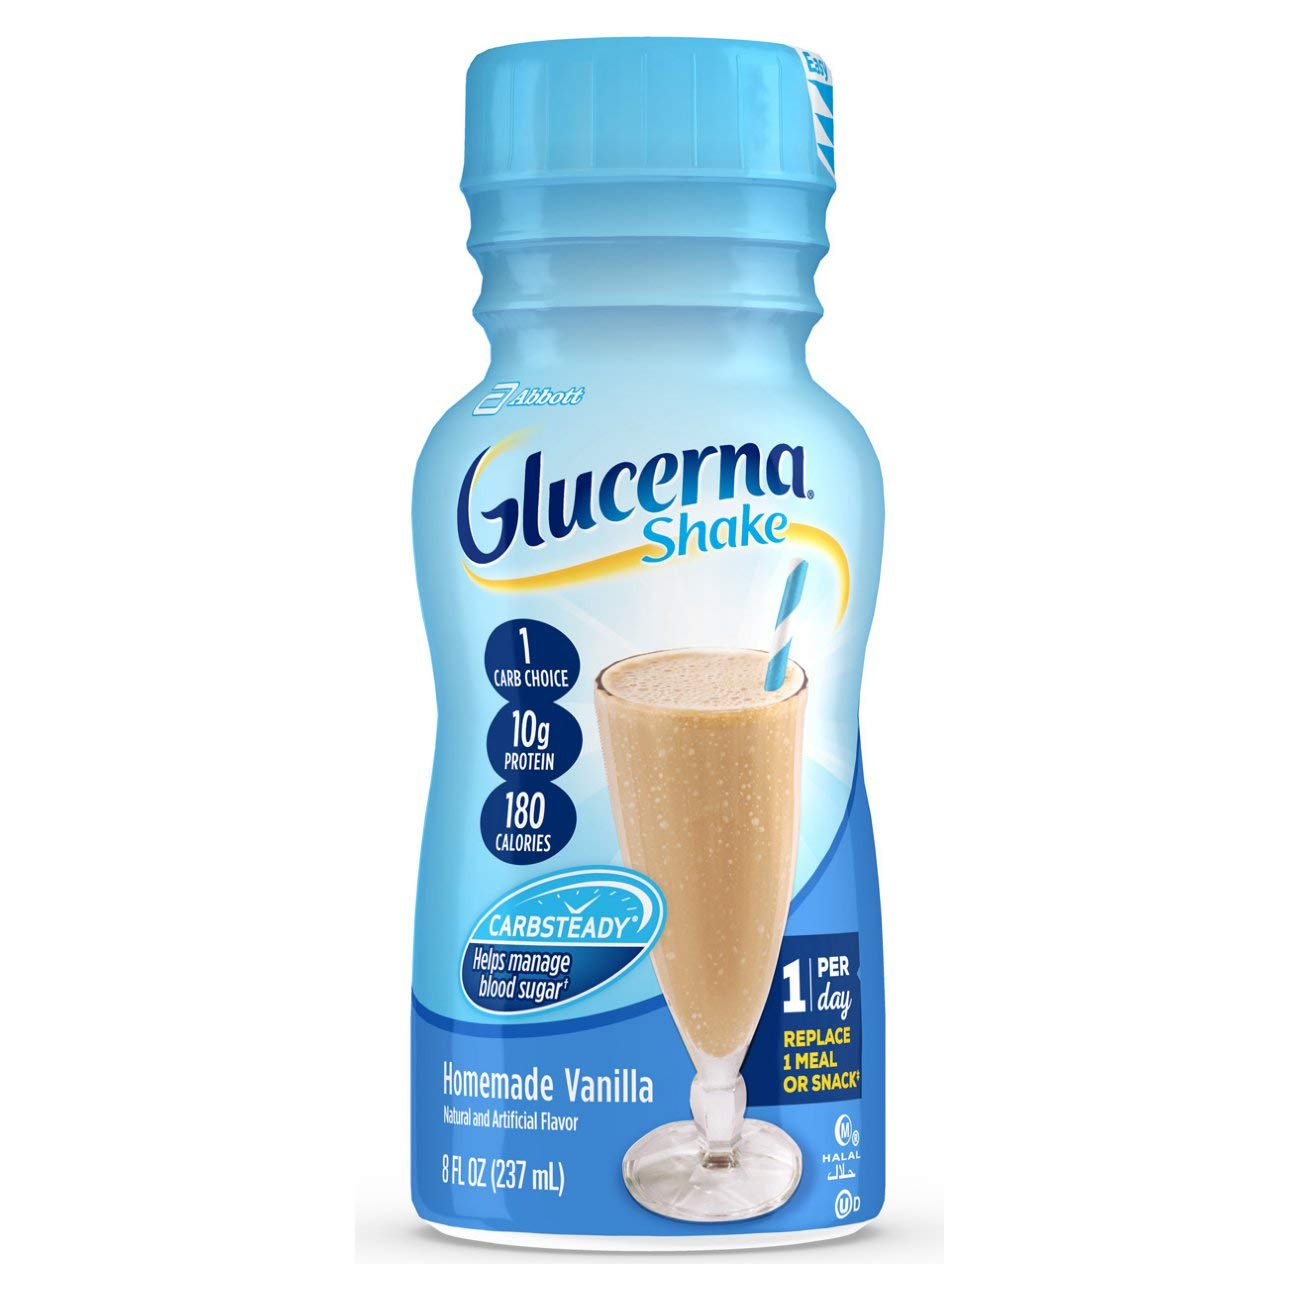 Glucerna, Diabetes Nutritional Shake, With 10g of Protein, To Help Manage Blood Sugar, Homemade Vanilla, 8 fl oz, 24 Count